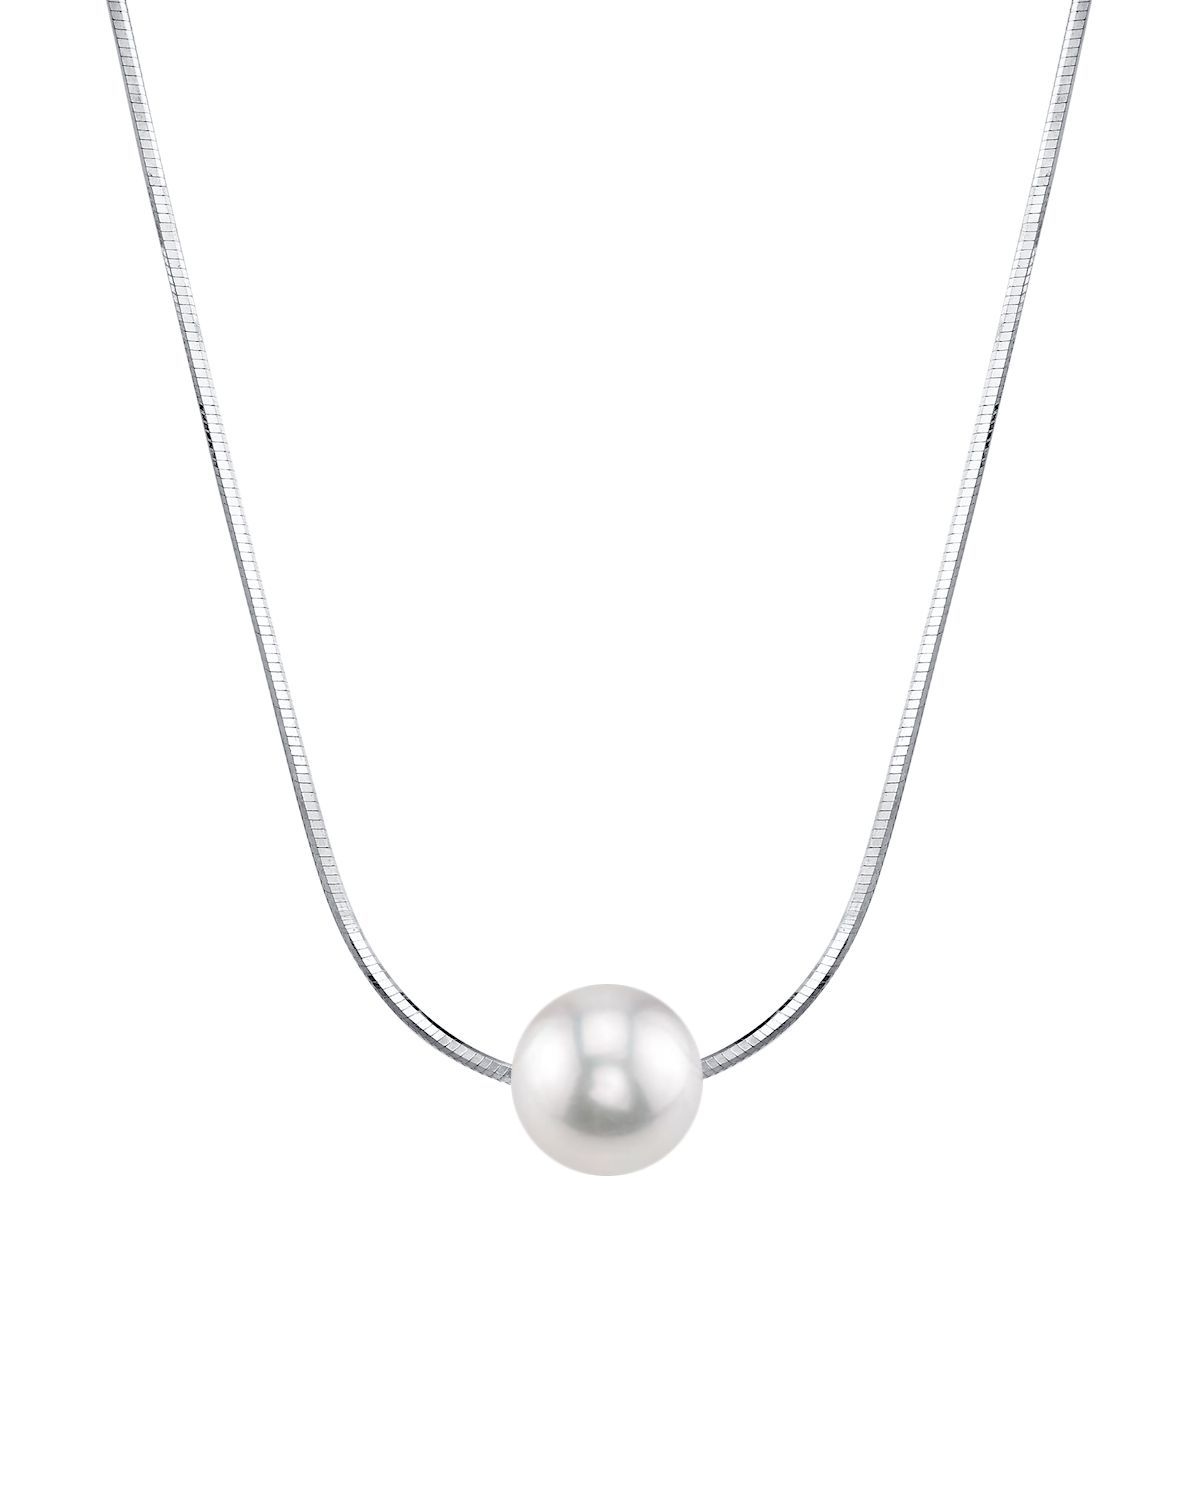 Pearl Moments - 8mm Freshwater Pearl Chain Necklace